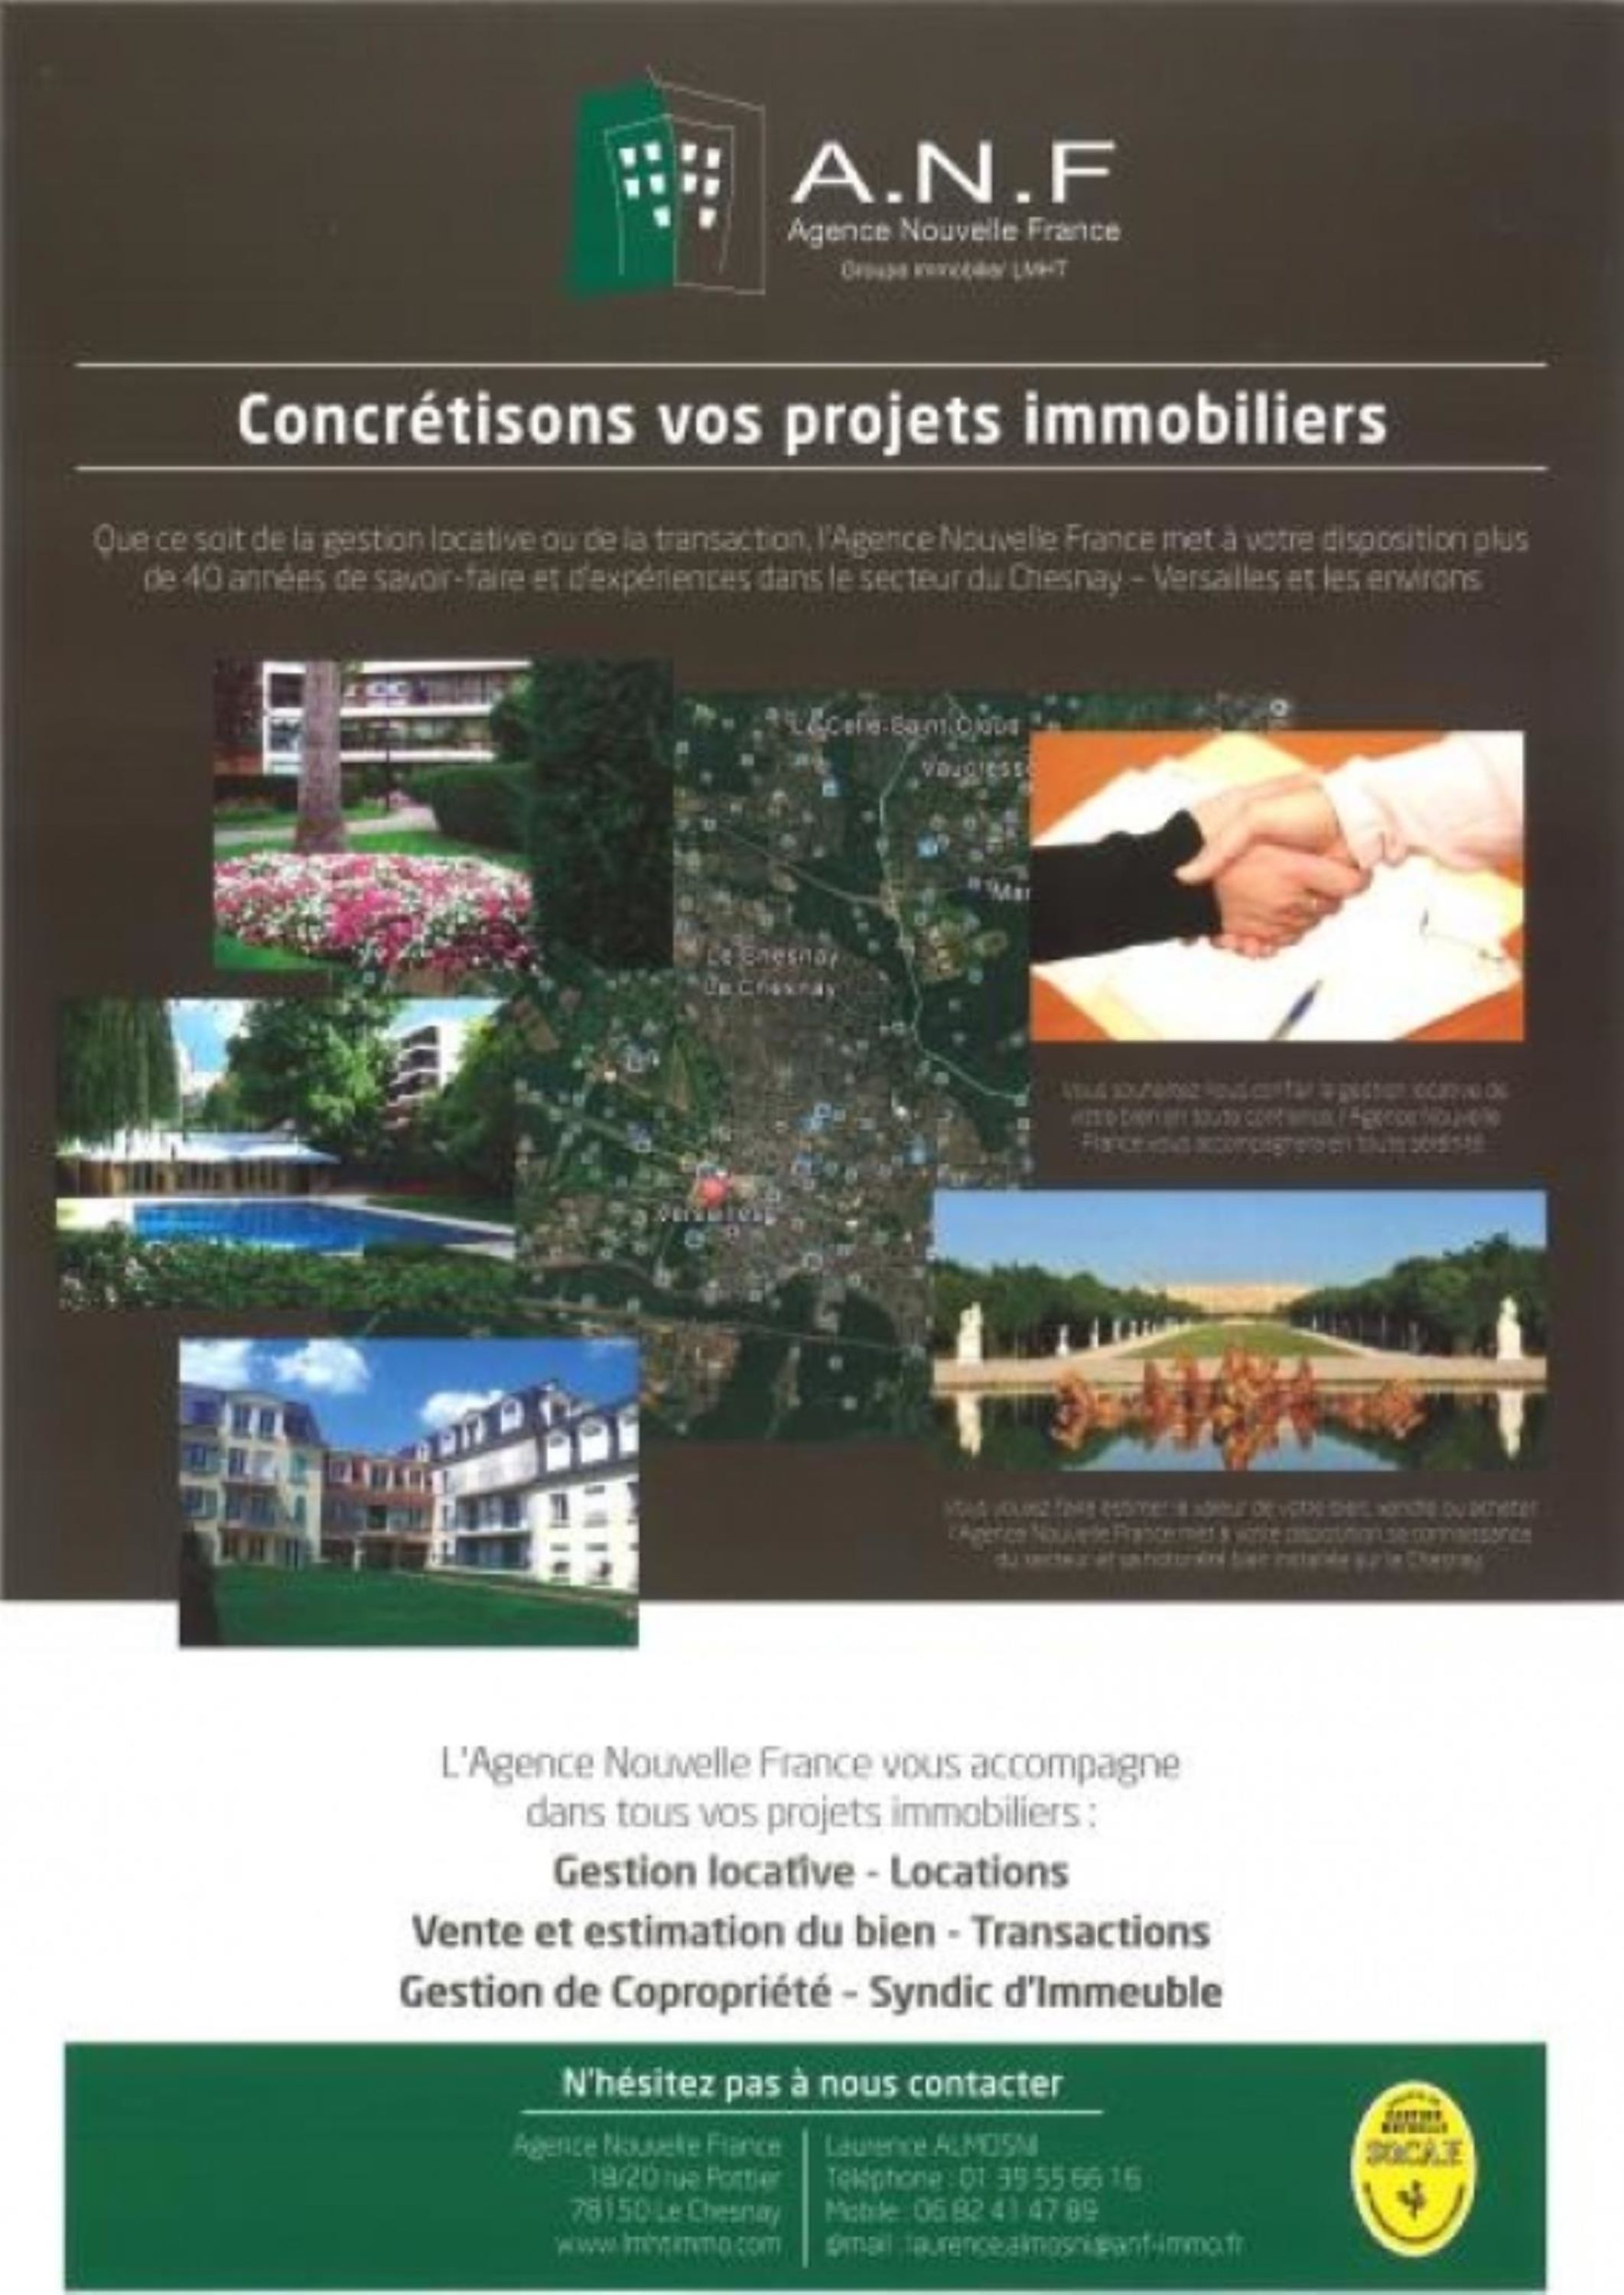 agence immobilière sevres 92 le chesnay 78 achat vente location appartement maison immobilier LMHT ANF AIVQJYUA